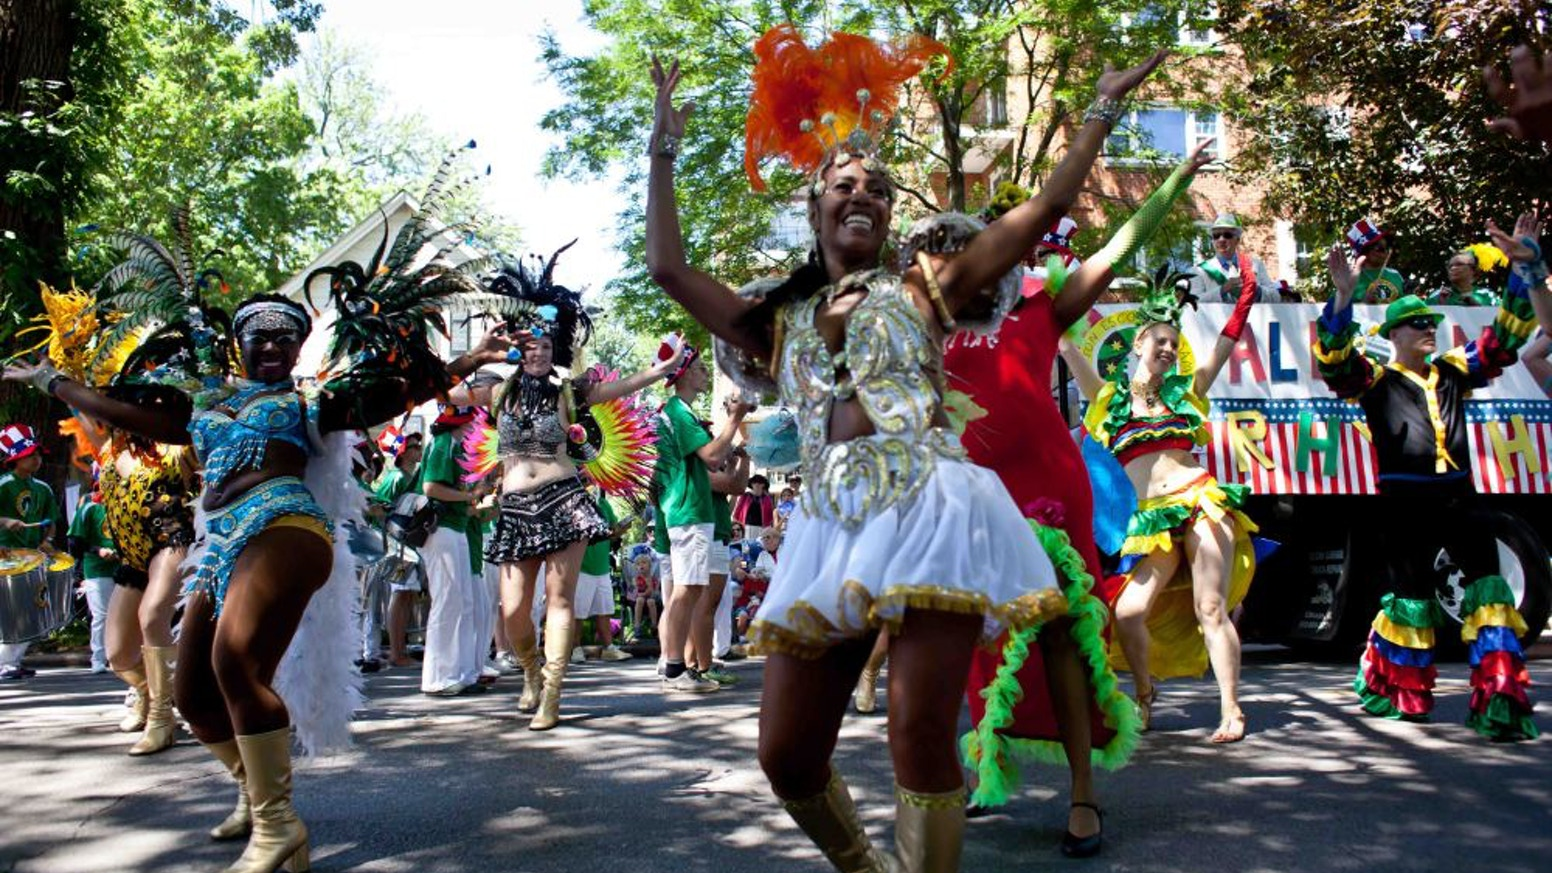 Help us to bring a little bit of Brazil to Chicago, by funding the Evanston Escola de Samba's community and volunteer-driven parade!